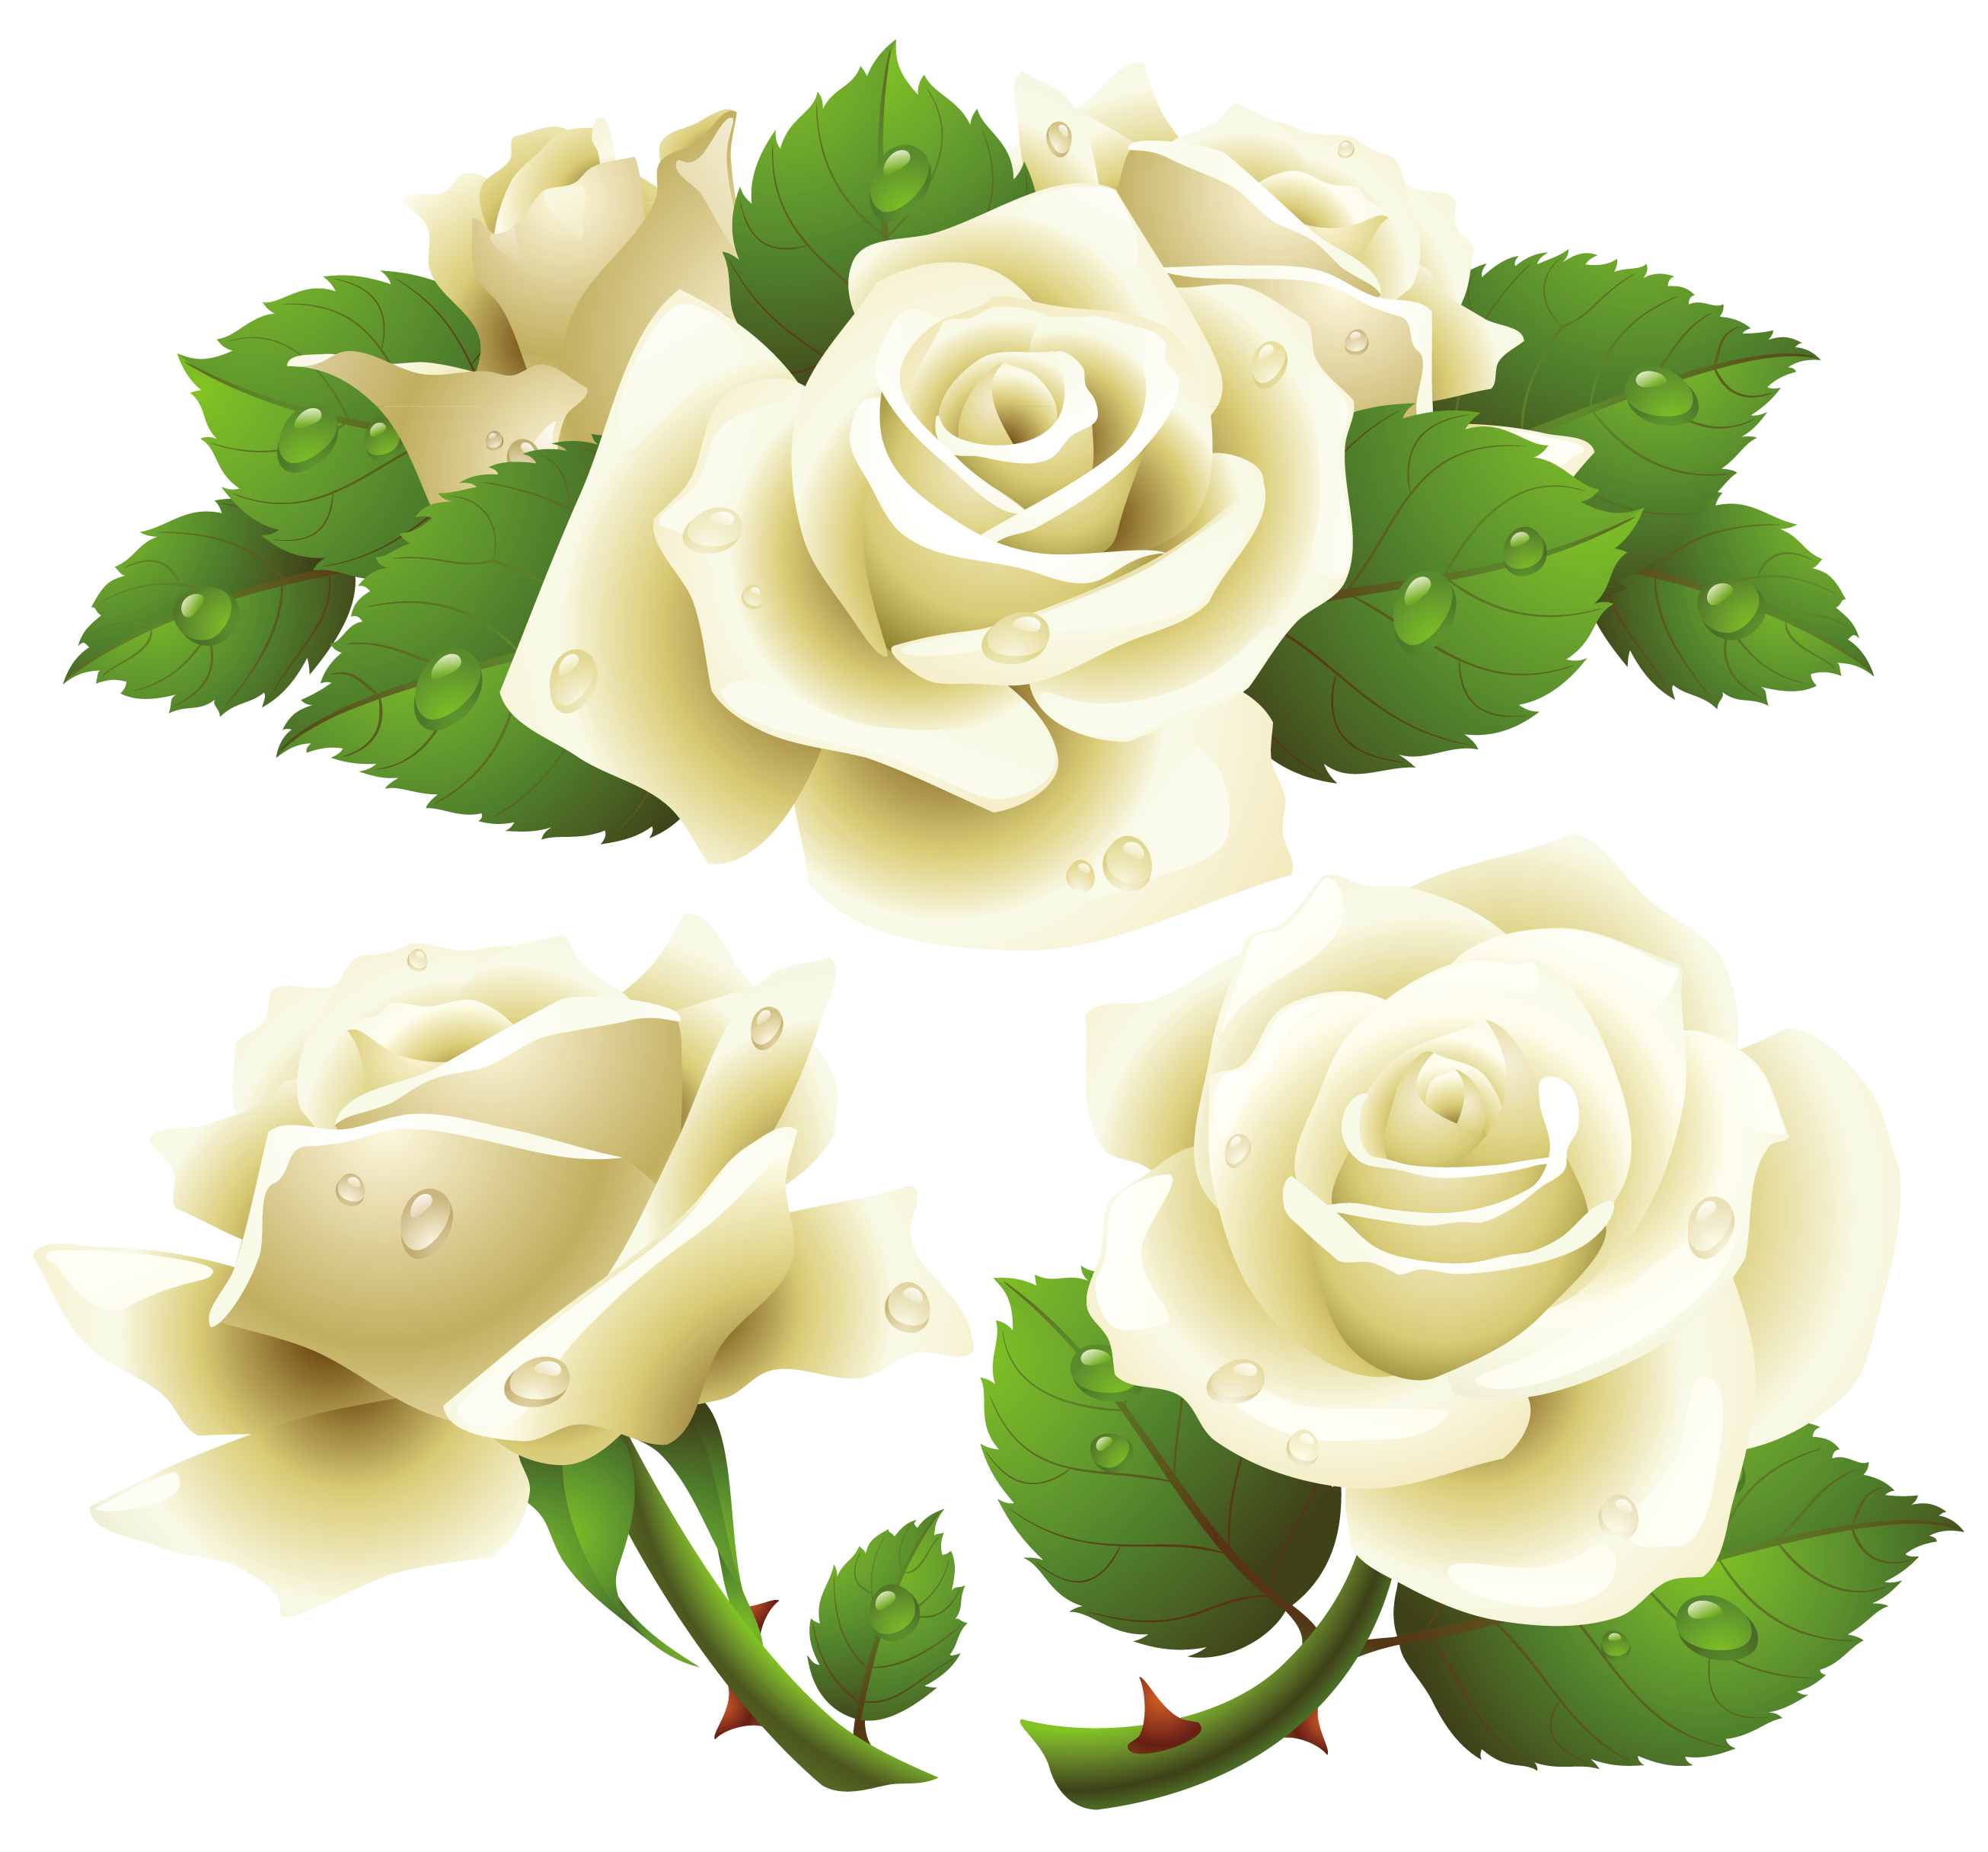 Flowers white png. Roses image purepng free